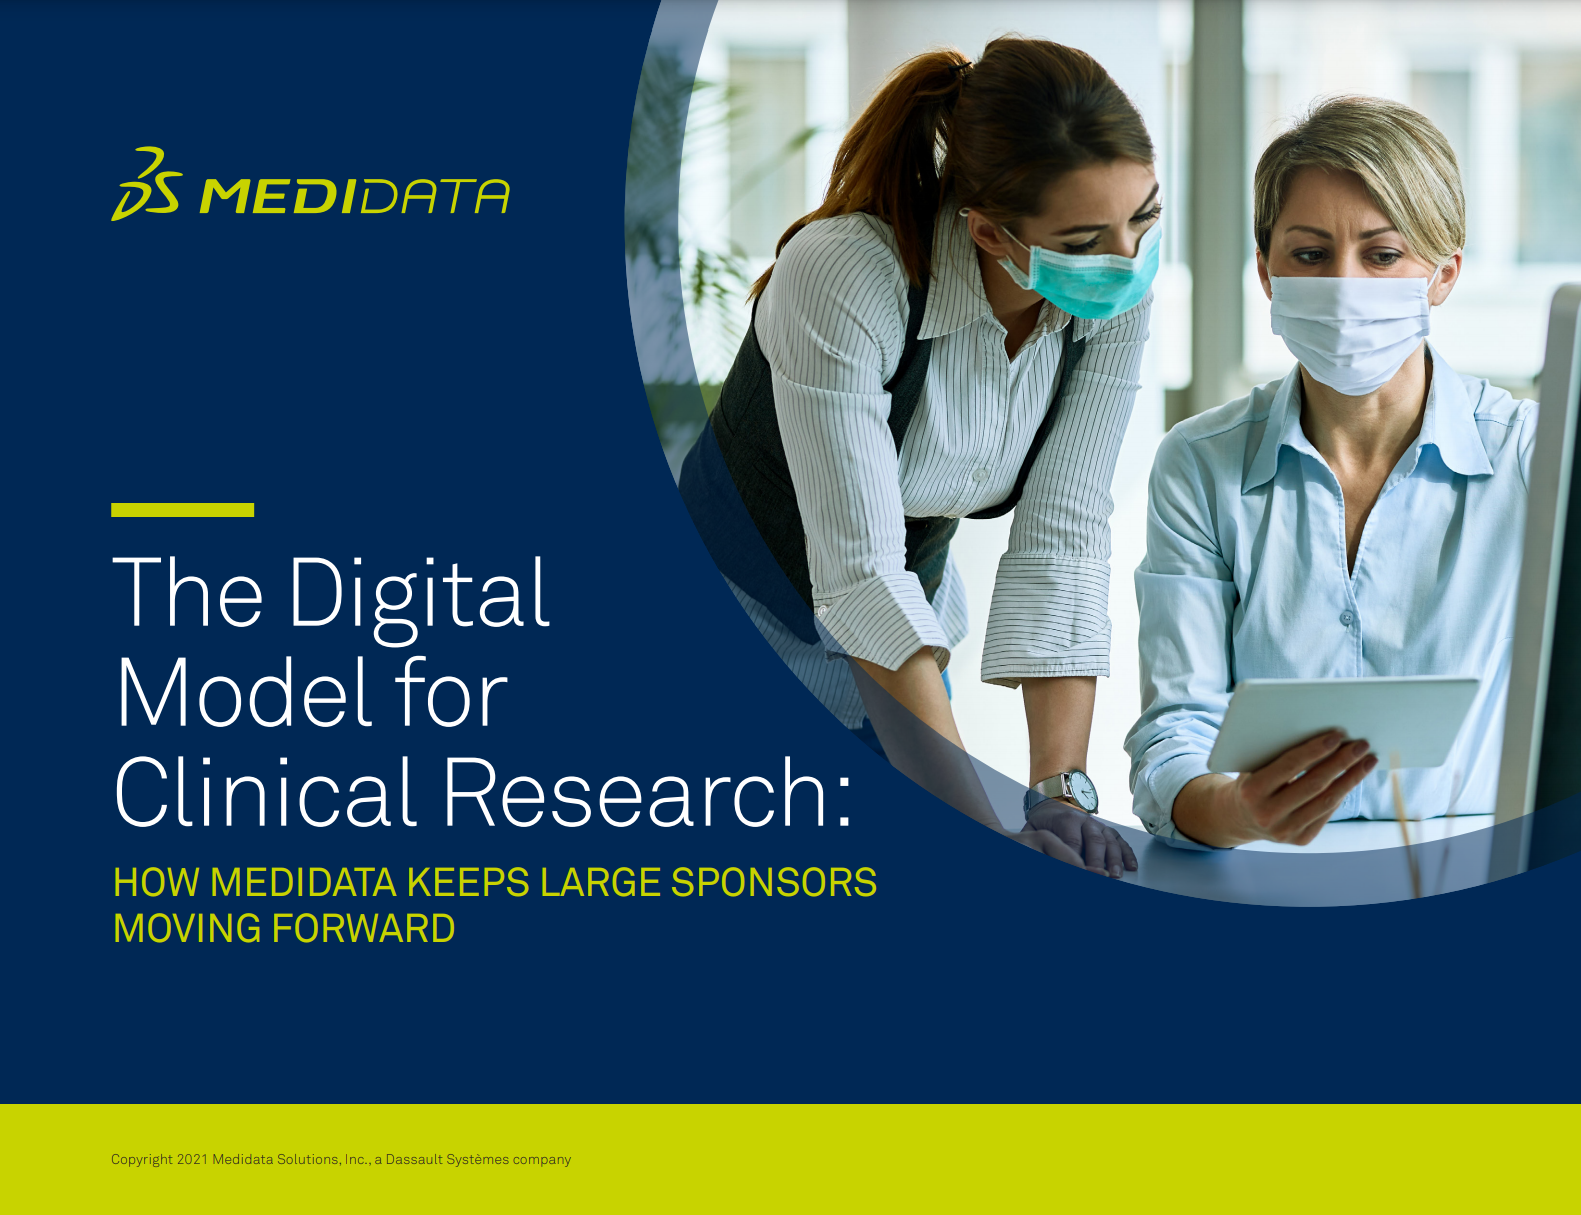 The Digital Model for Clinical Research: How Medidata Keeps Large Sponsors Moving Forward